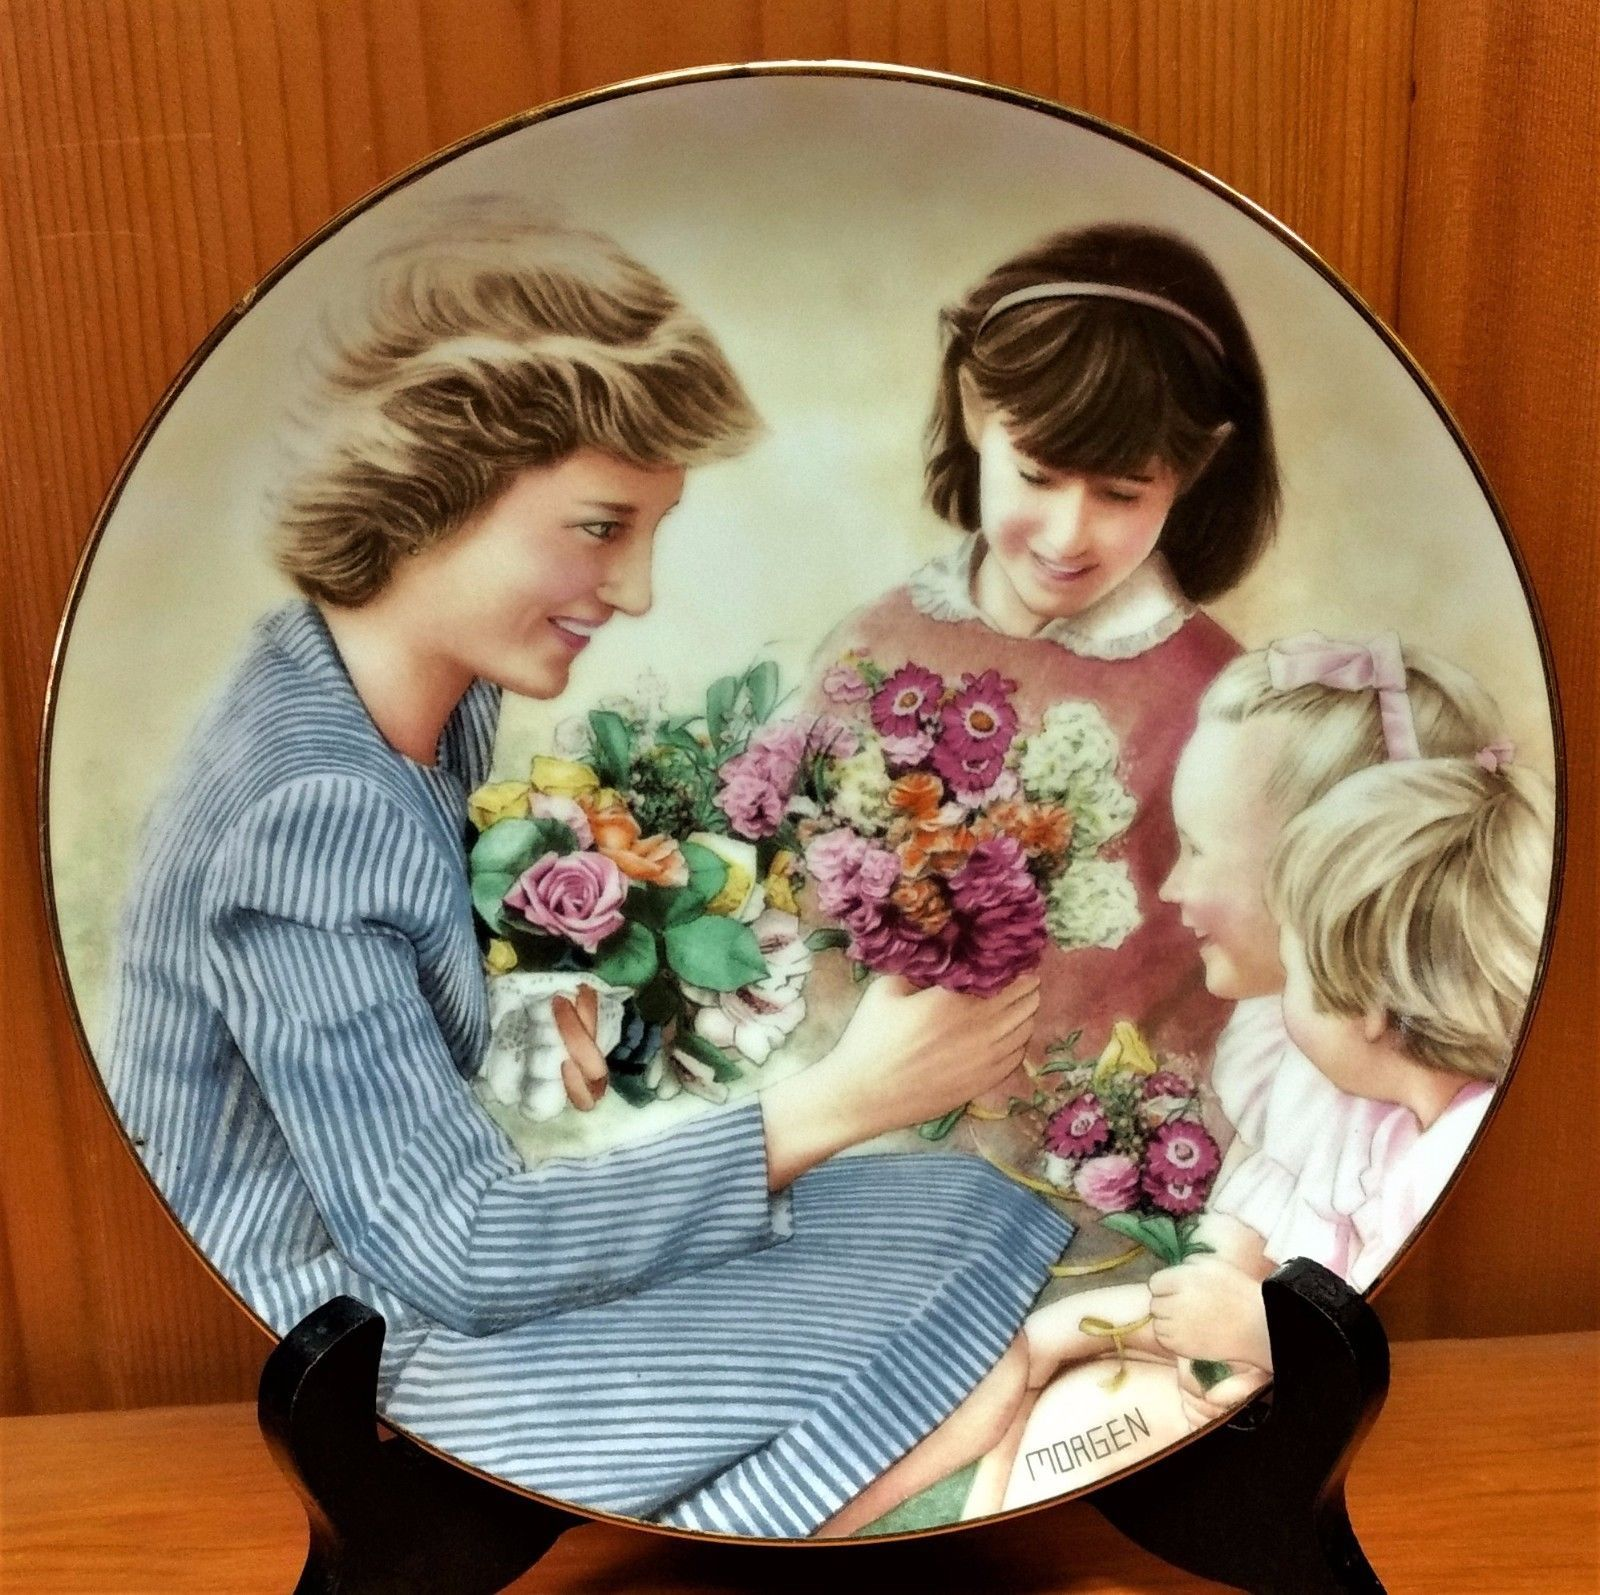 Primary image for Flowers For Diana Commemorative Plate - Danbury Mint Limited Edition 1988